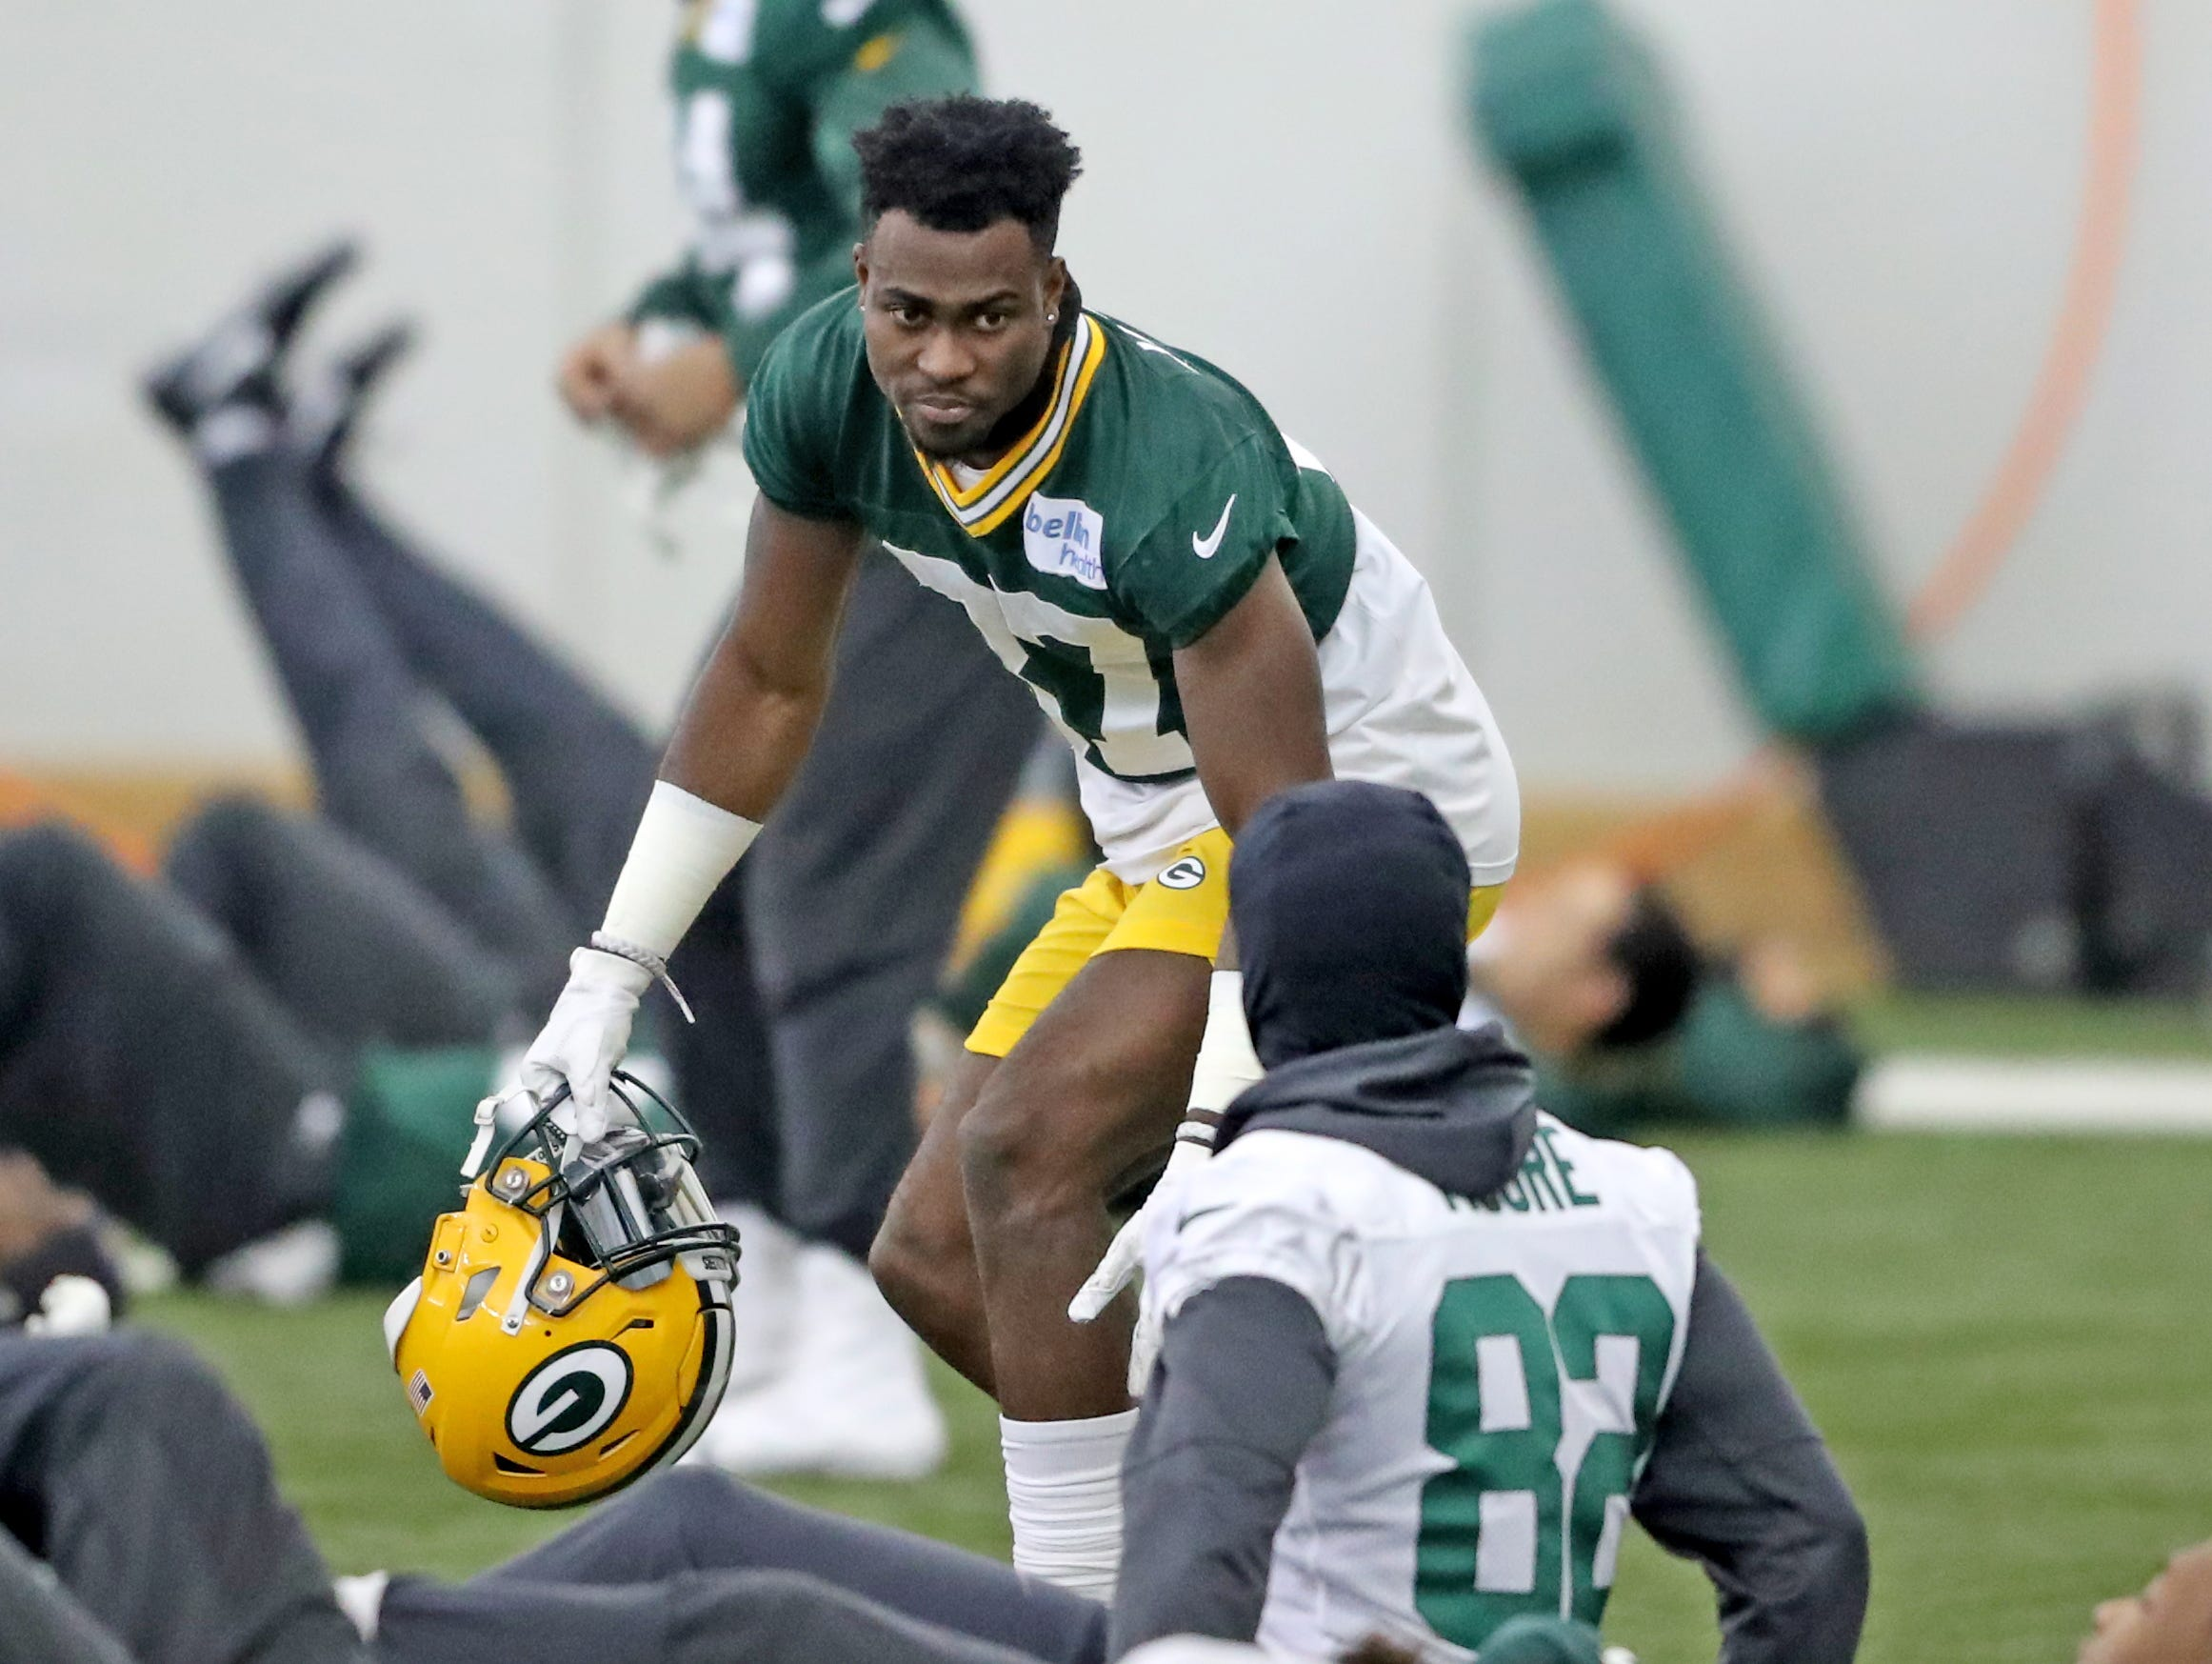 Green Bay Packers cornerback Josh Jackson (37) talks with wide receiver J'Mon Moore (82) during practice Wednesday, December 12, 2018 in the Don Hutson Center in Ashwaubenon, Wis.